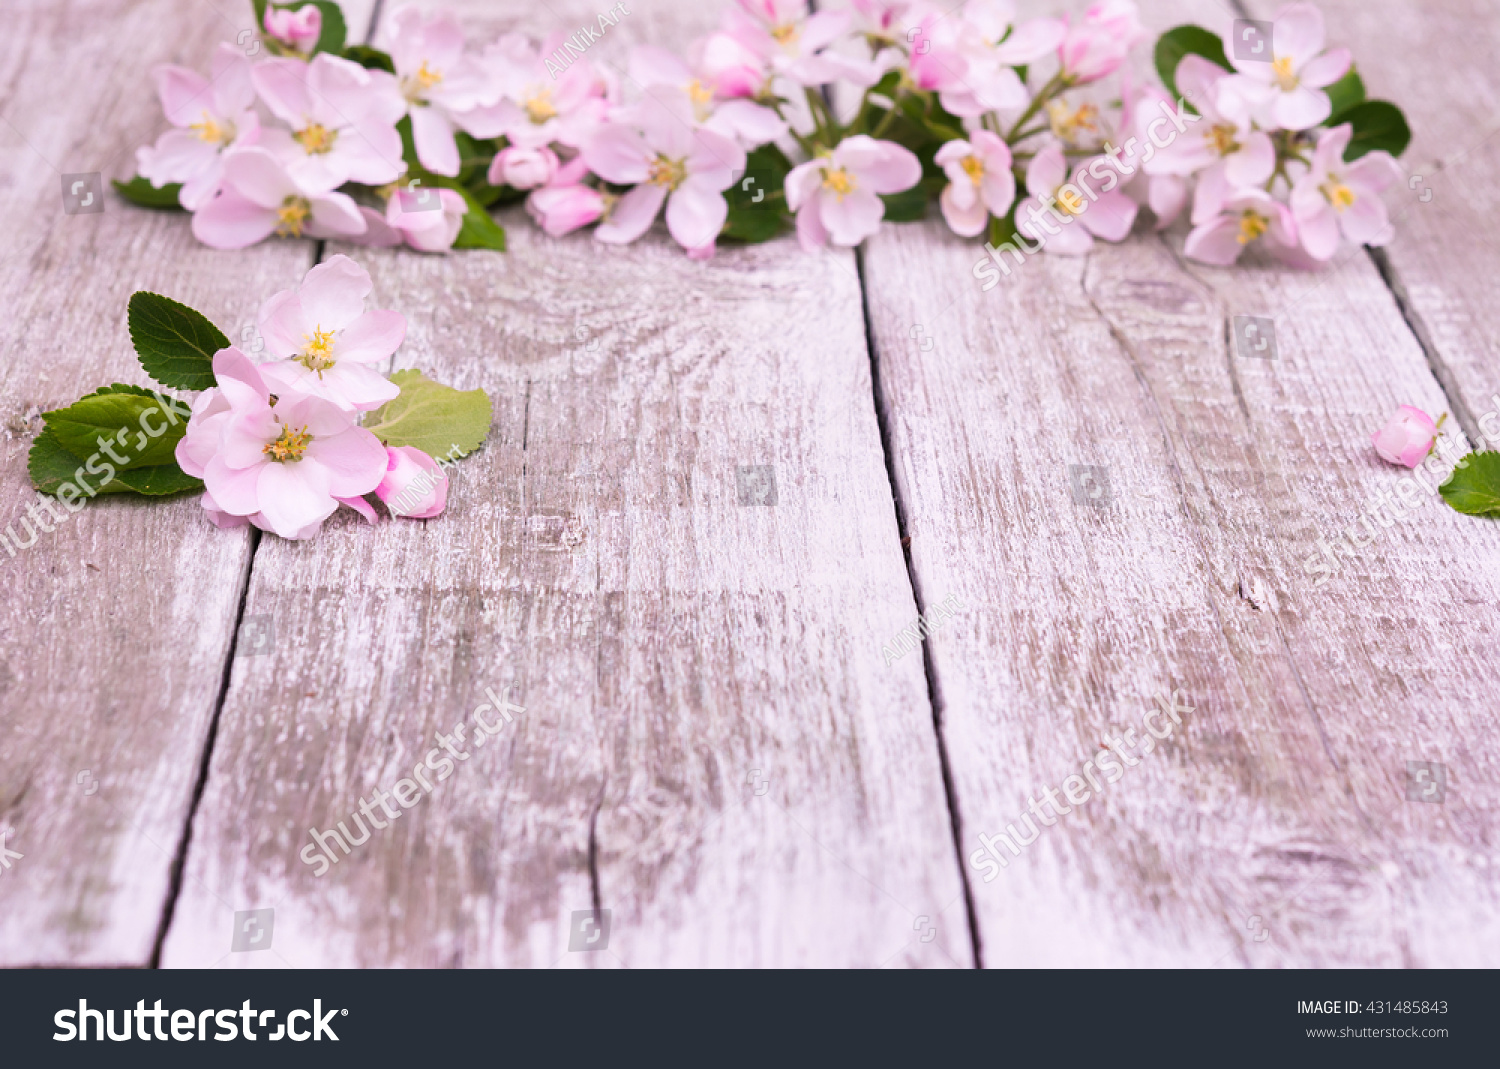 Flowers Apple Tree Blossoms On Rustic Wooden Background With Copy Space For Greeting Message